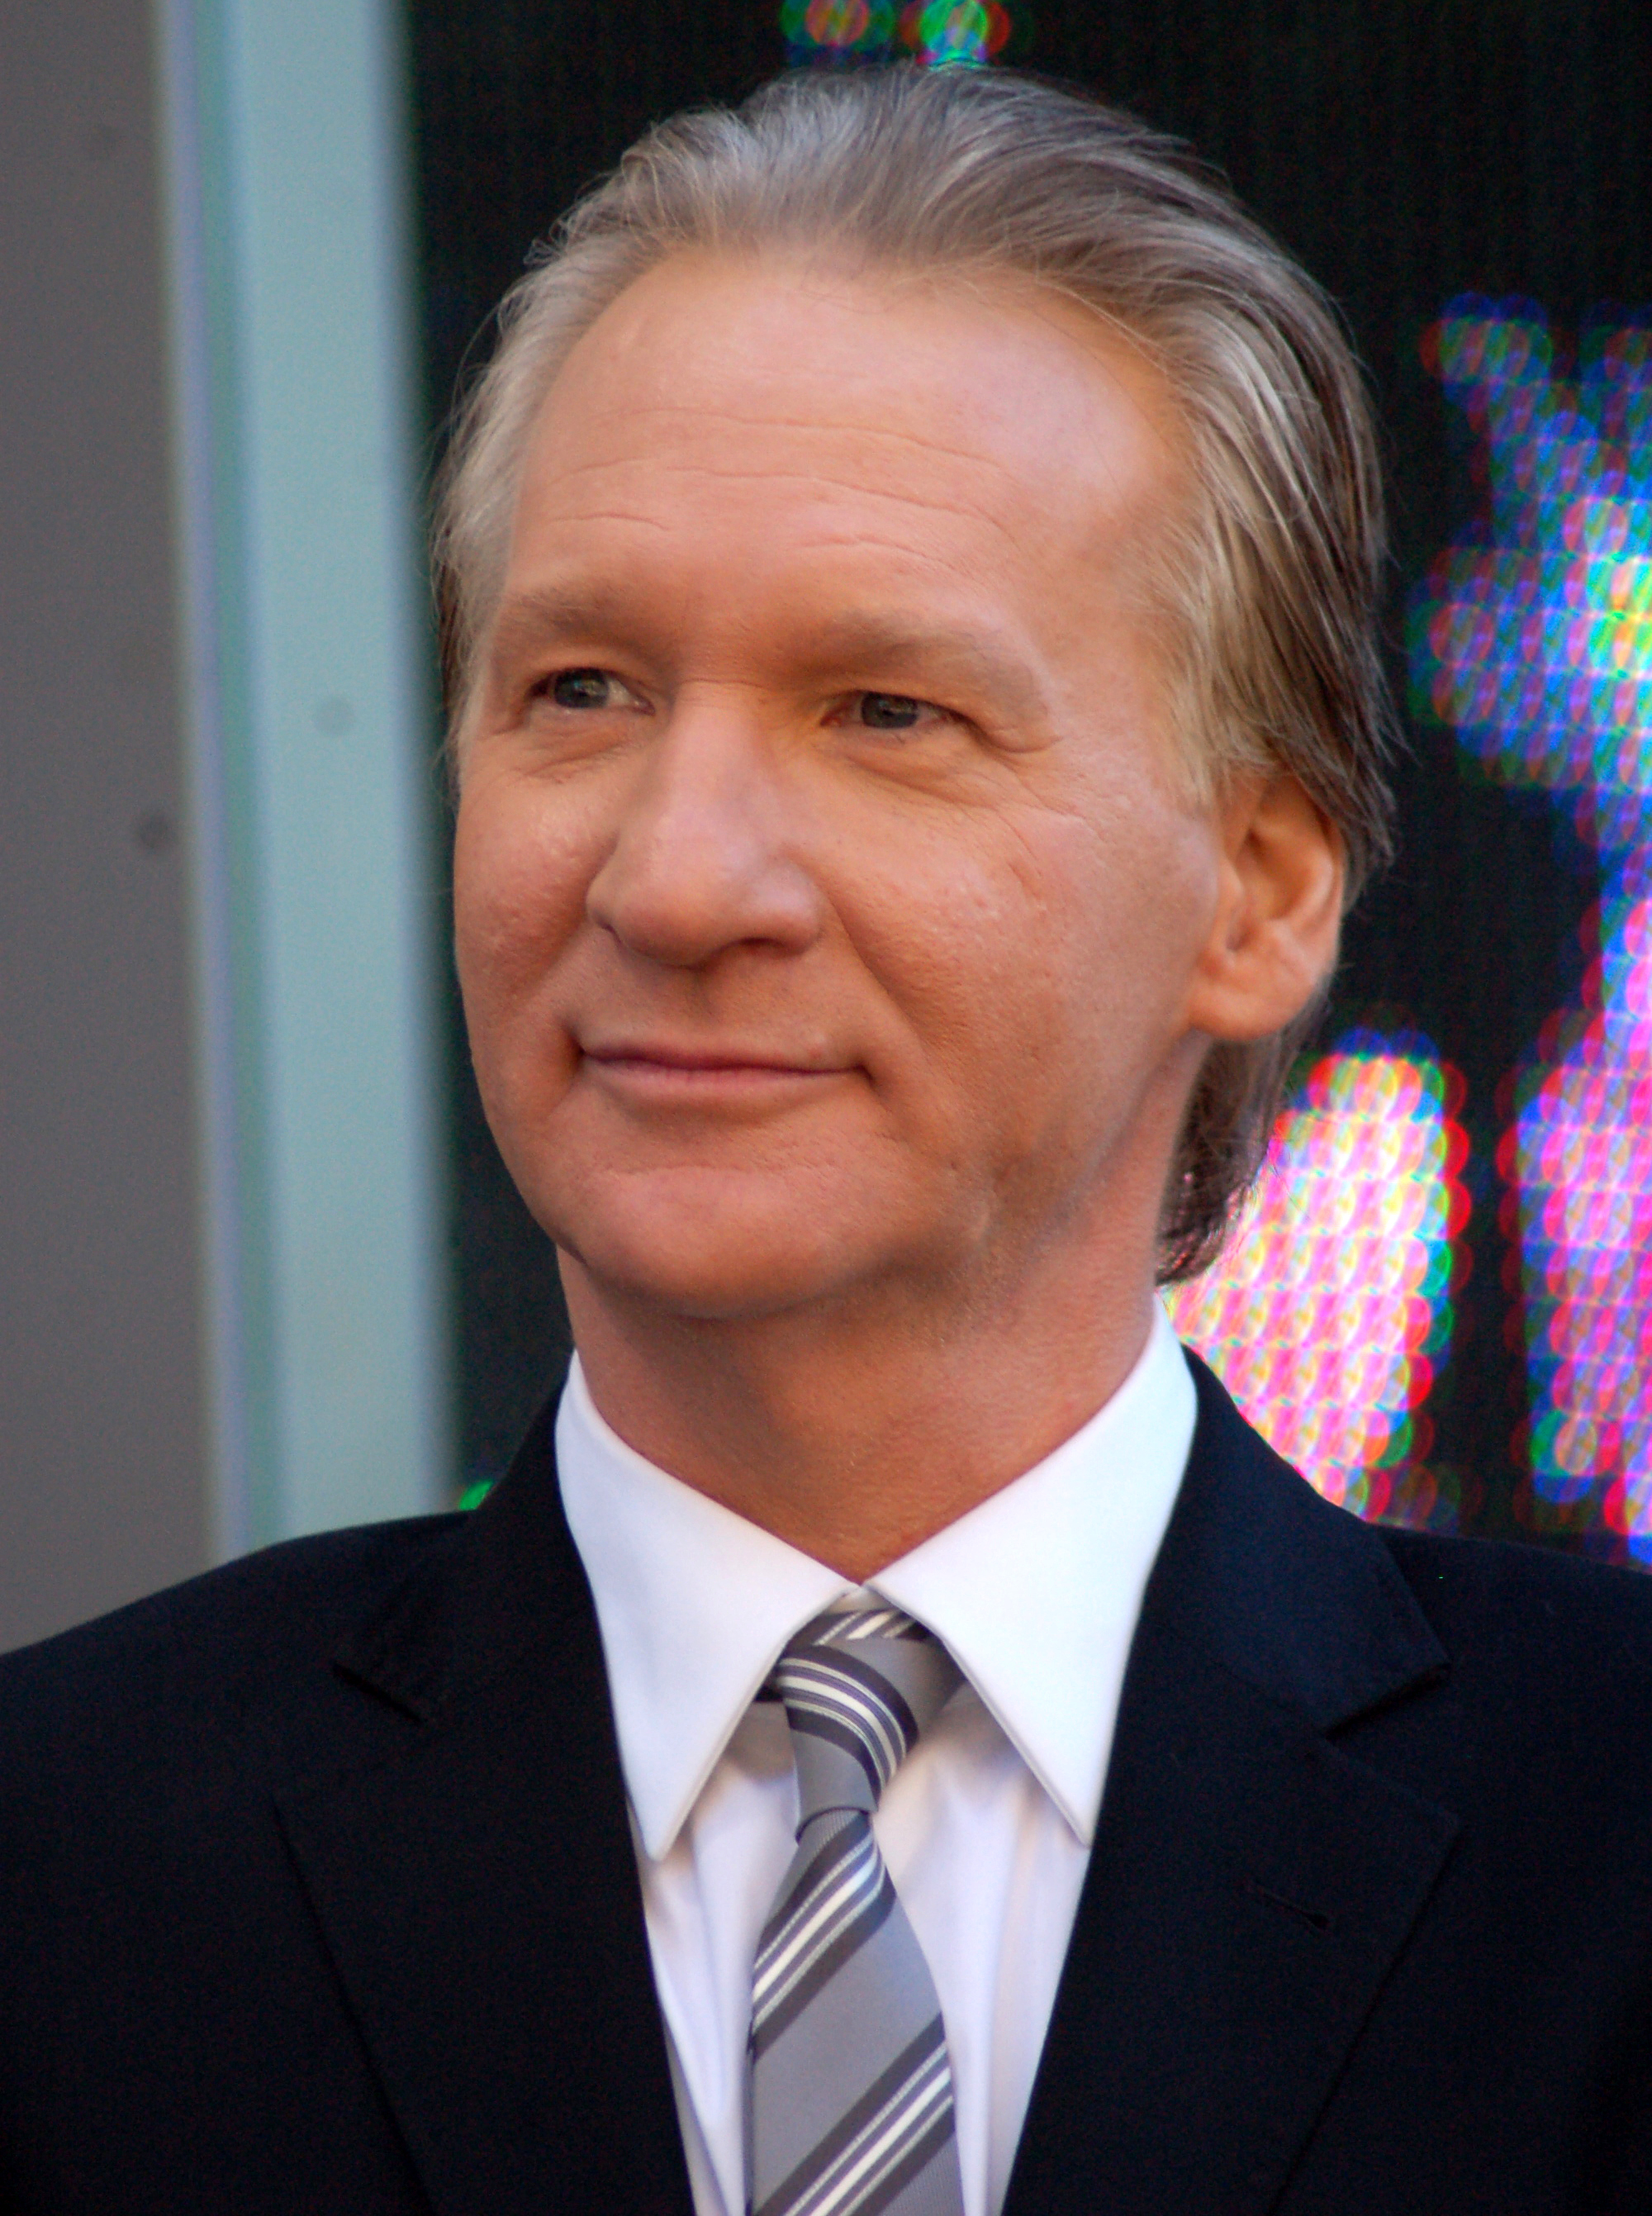 The 61-year old son of father William Maher, Sr. and mother Julie Maher, 173 cm tall Bill Maher in 2017 photo